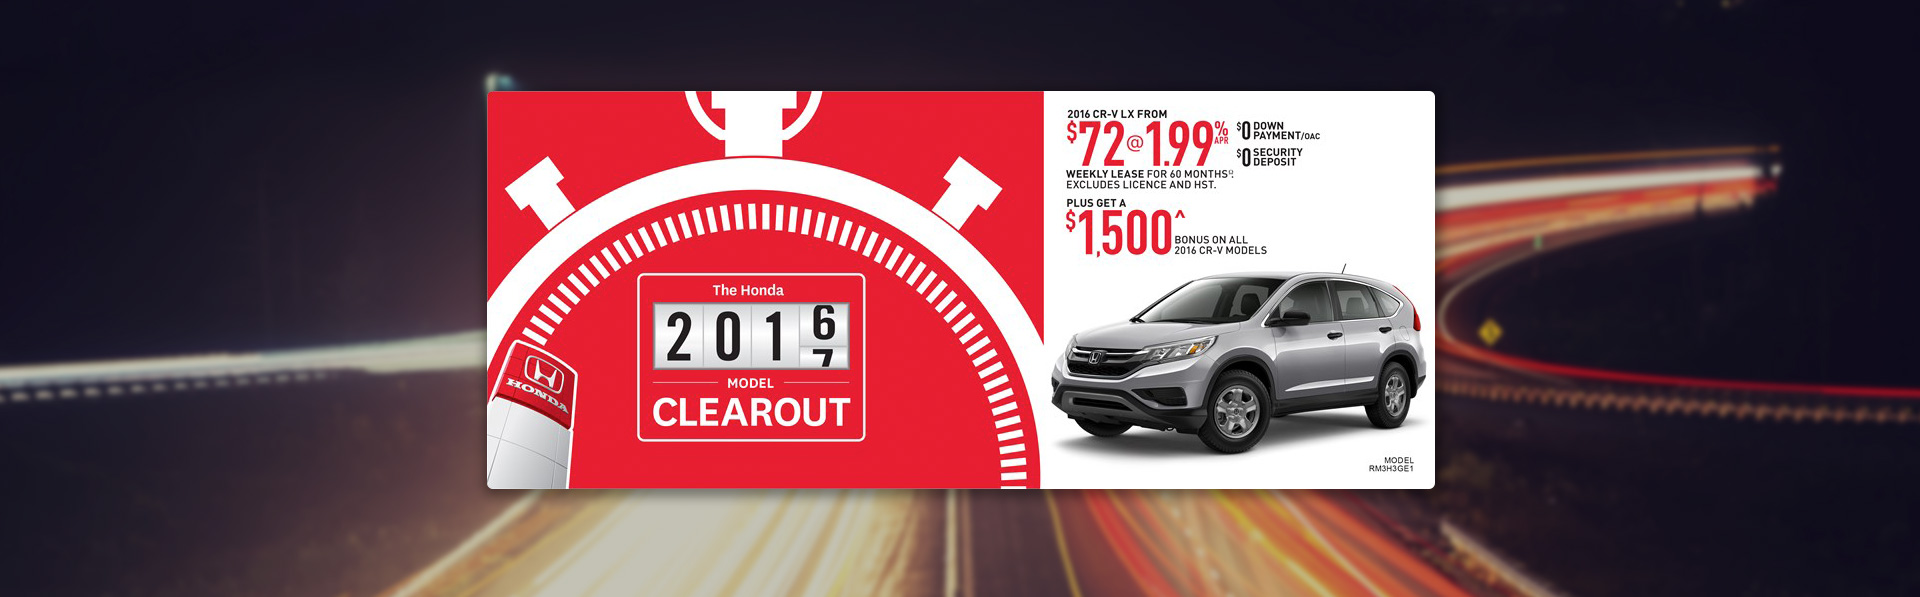 Honda CR-V - September Incentive